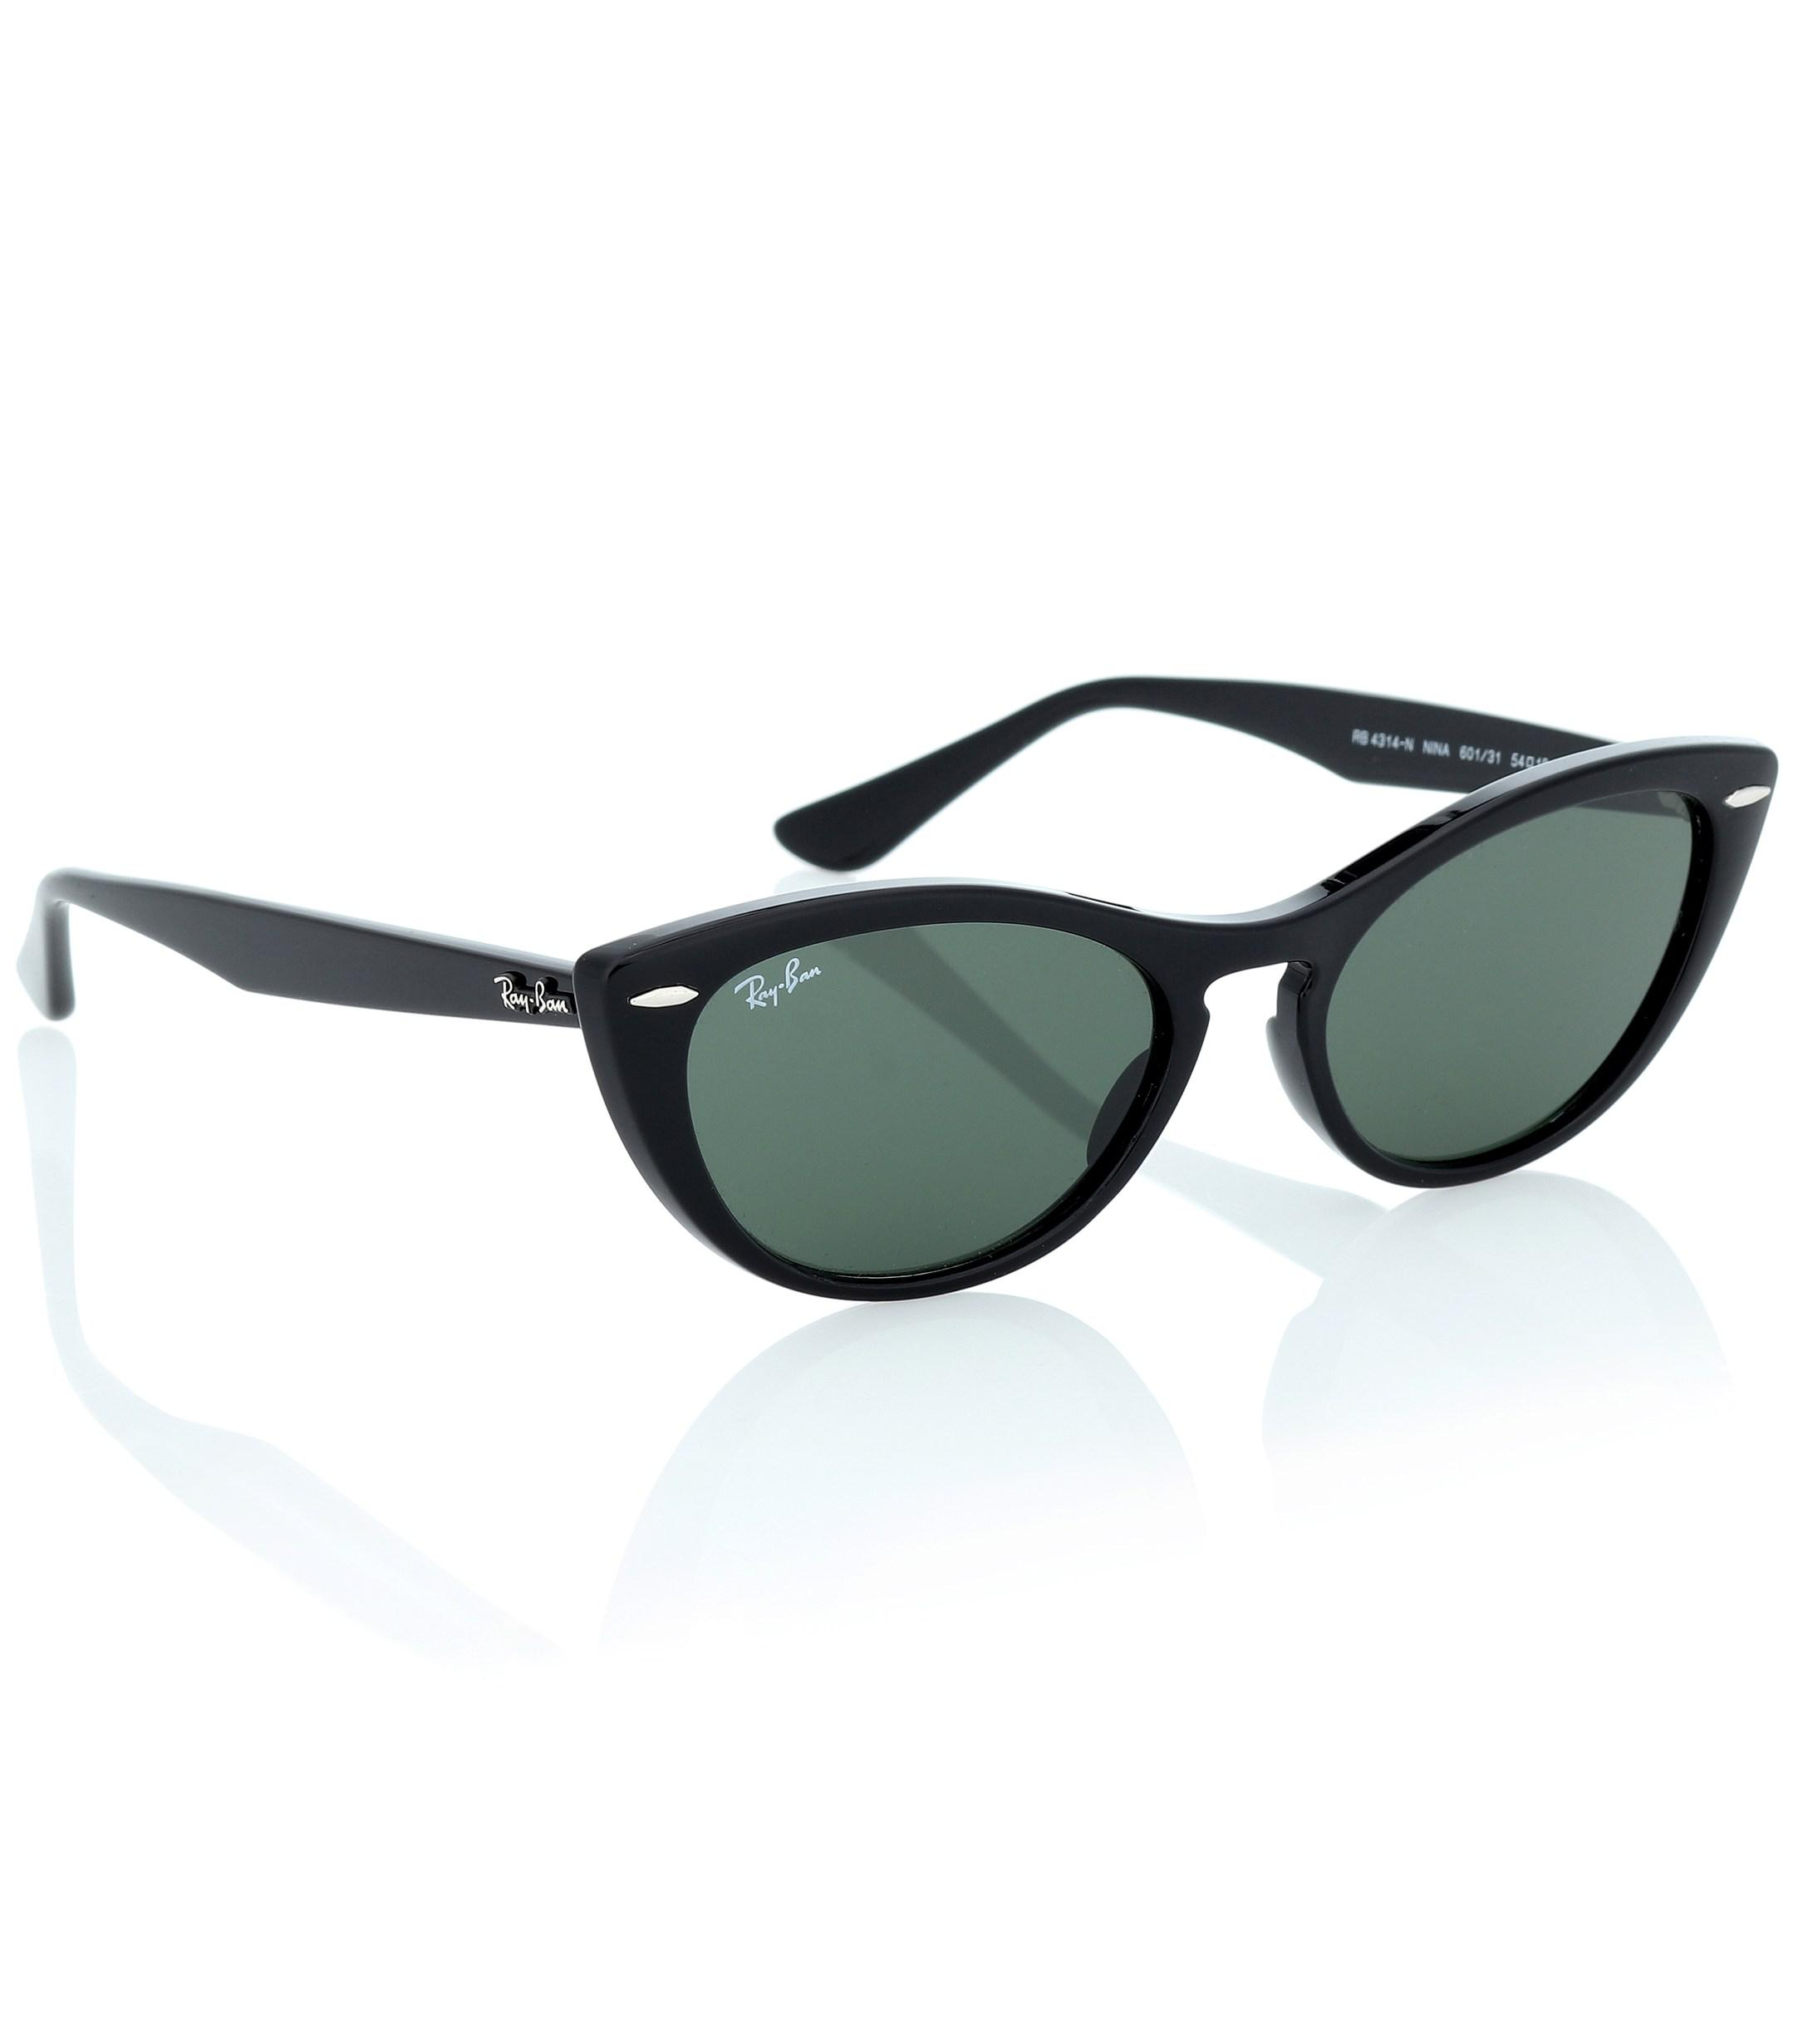 37182e42aa3 Ray-Ban - Black Nina Cat-eye Acetate Sunglasses - Lyst. View fullscreen